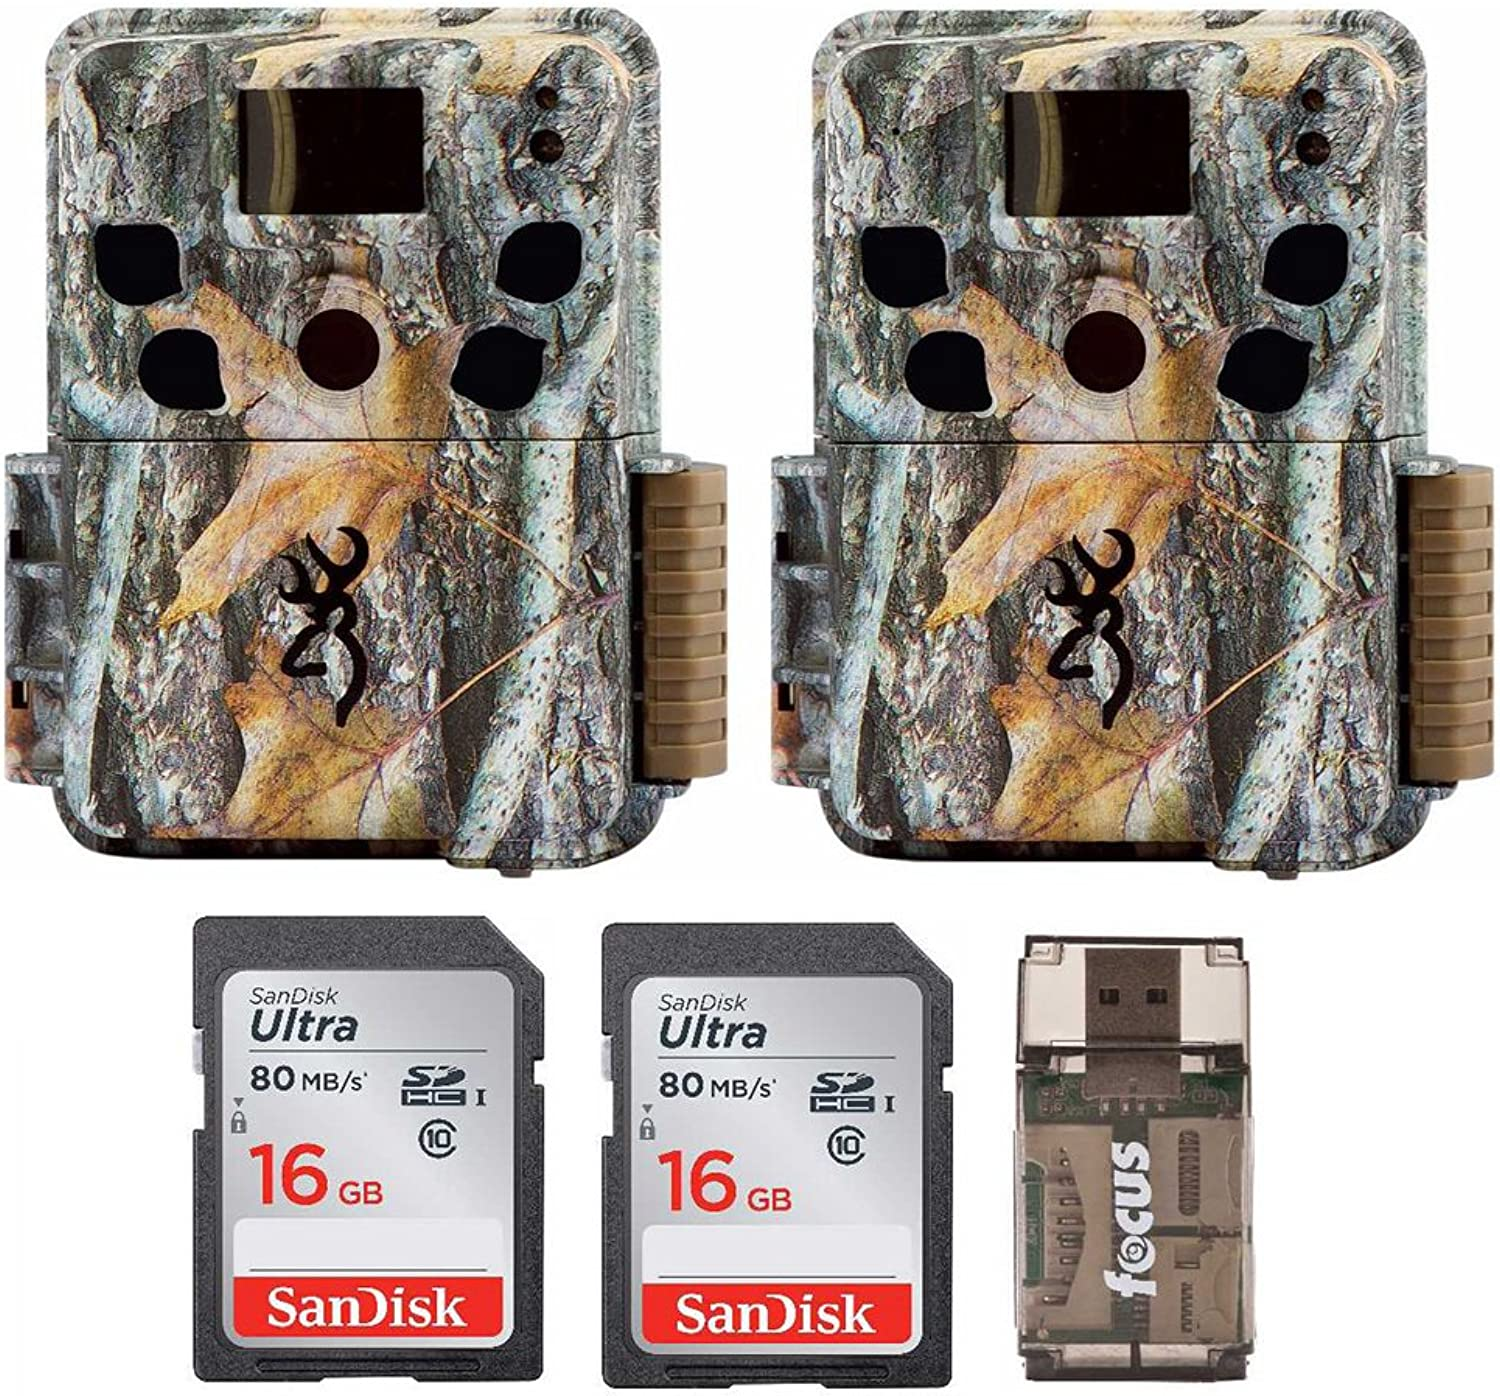 Two Browning Dark Ops HD Pro Trail Cameras (BTC6HDP) with 16GB Memory Cards and Focus Card Reader